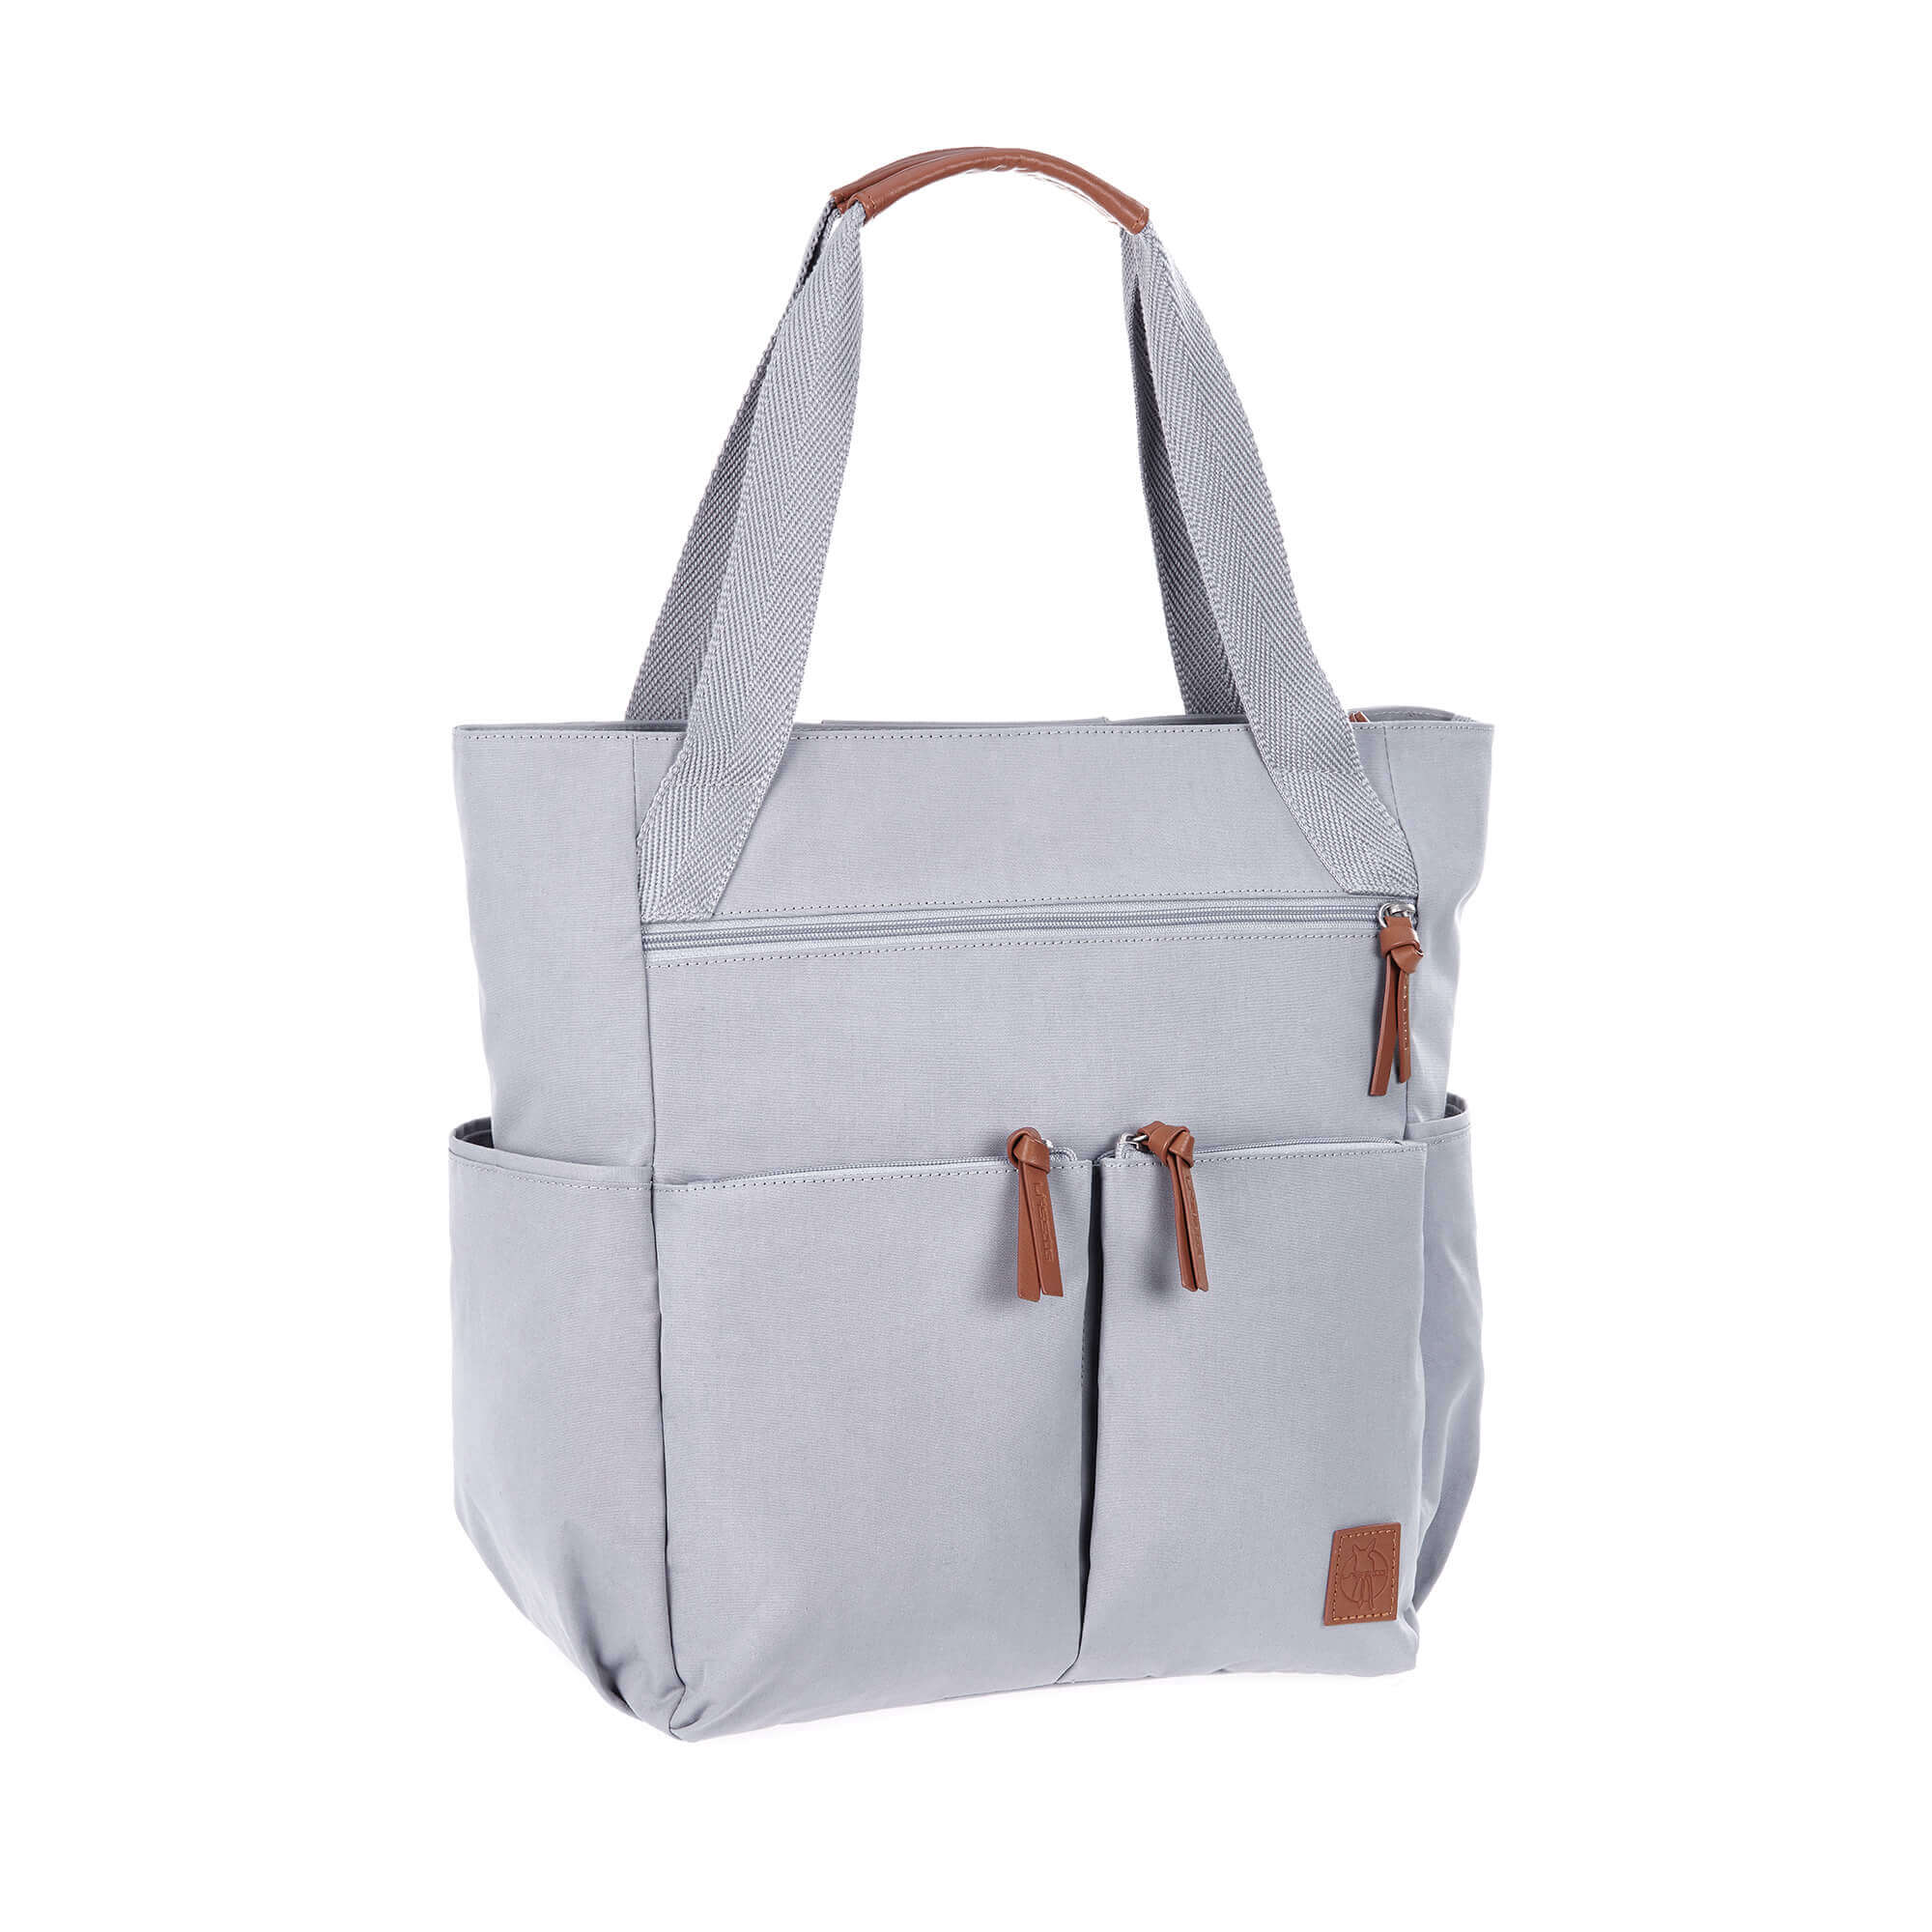 6ba184754665 Lässig Vintage Friisa Diaper Bag, Grey | LÄSSIG FASHION